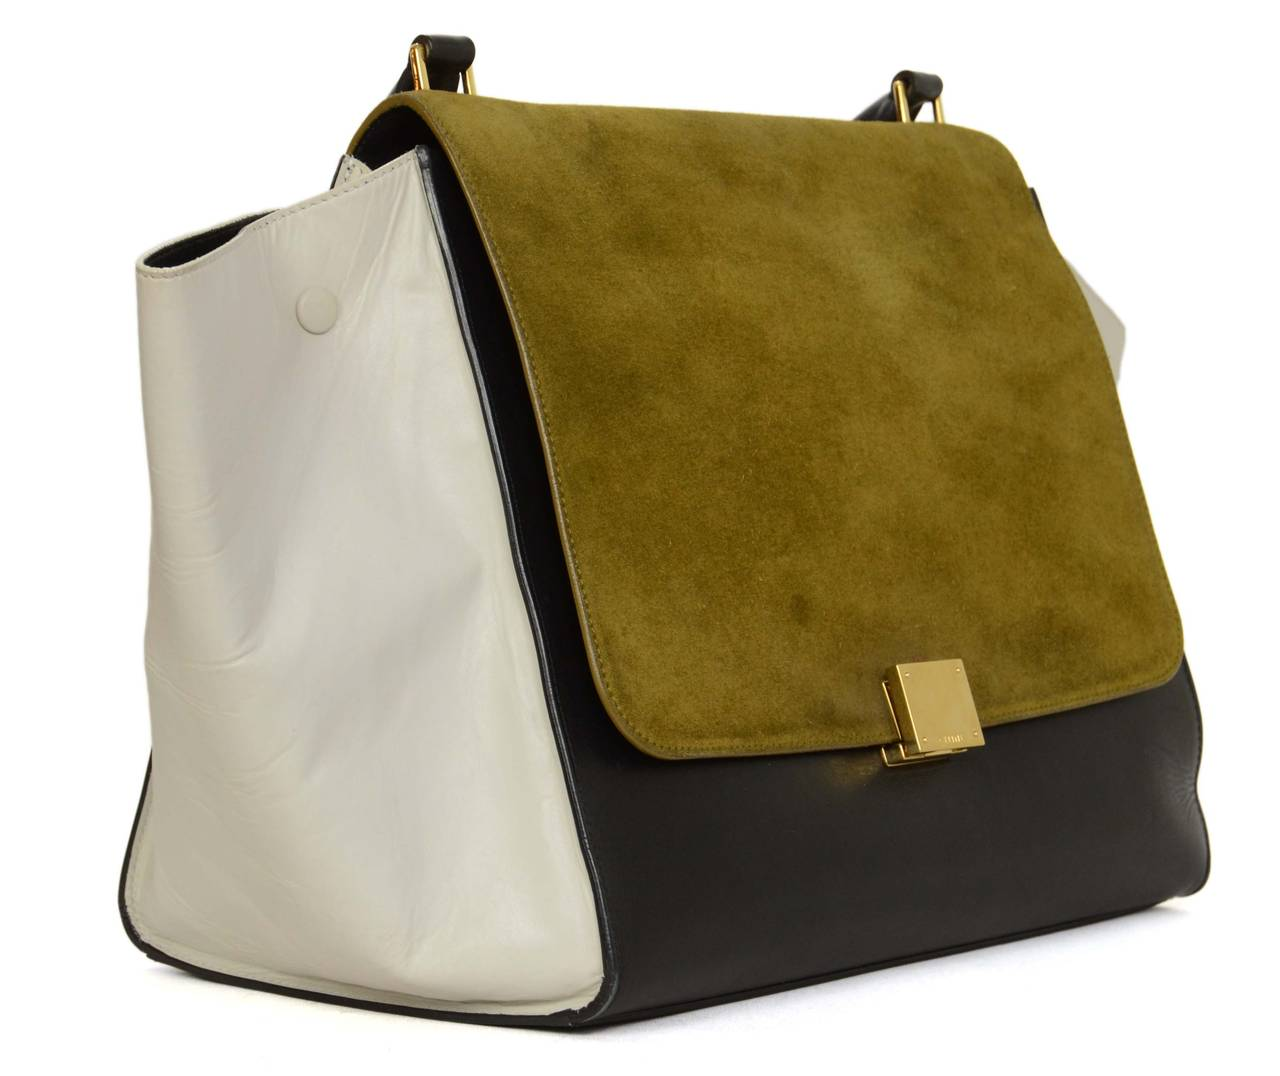 CELINE 2012 Olive/Navy/White Leather and Suede Tri-Color LG ...